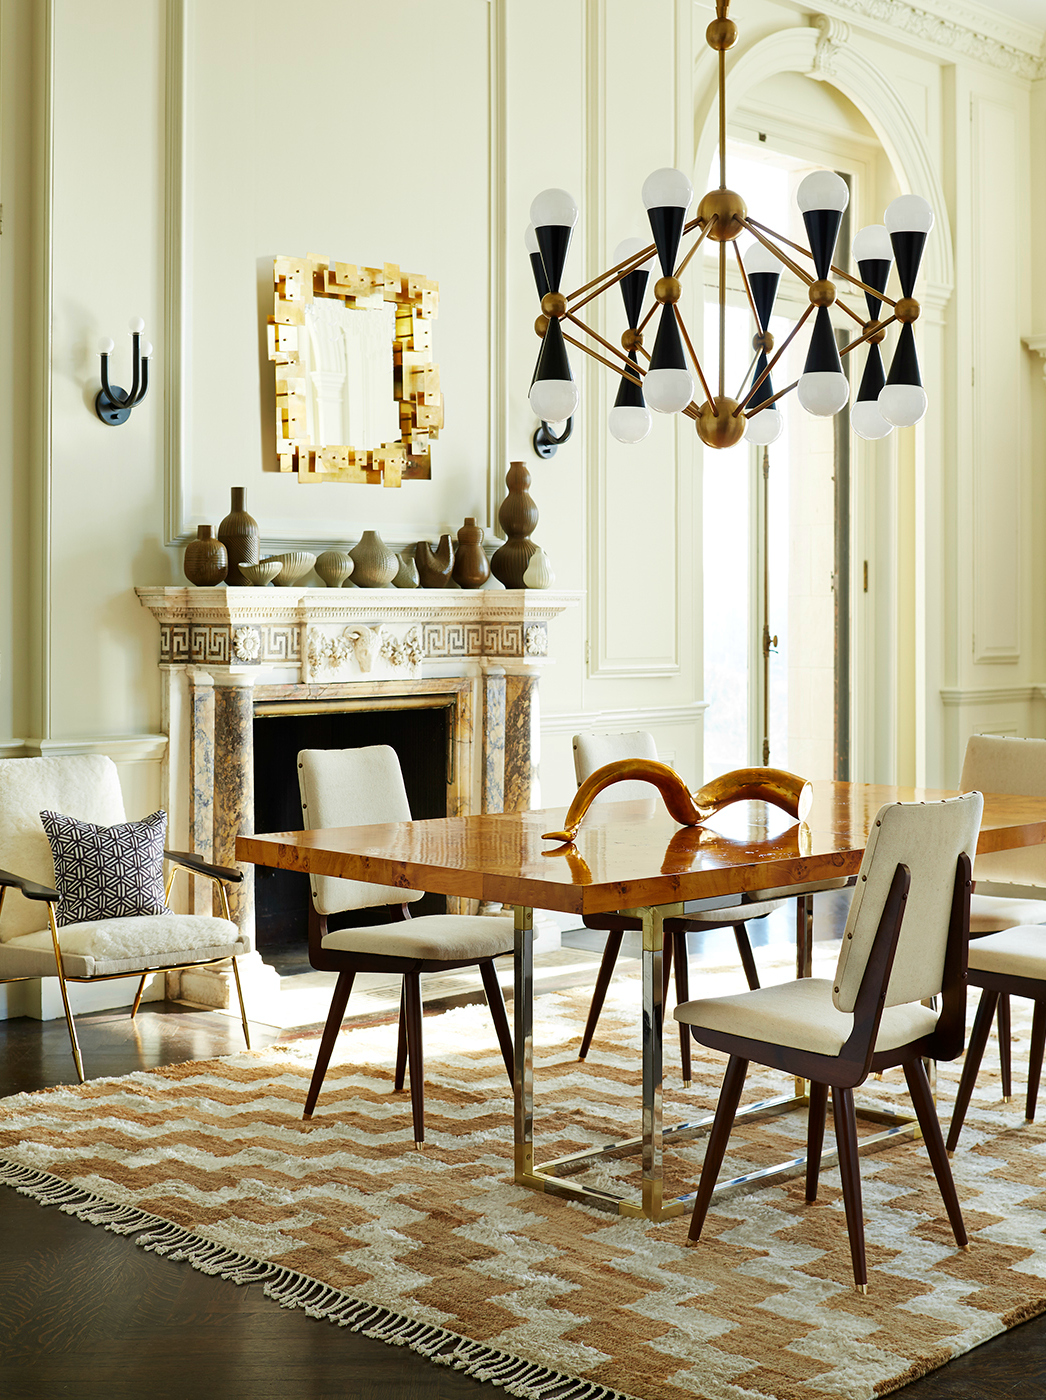 10 Beautiful Neutral Dining Room Rugs That You Will Covet dining room rugs 10 Beautiful Neutral Dining Room Rugs That You Will Covet 10 Beautiful Neutral Dining Room Rugs That You Will Covet 6 1